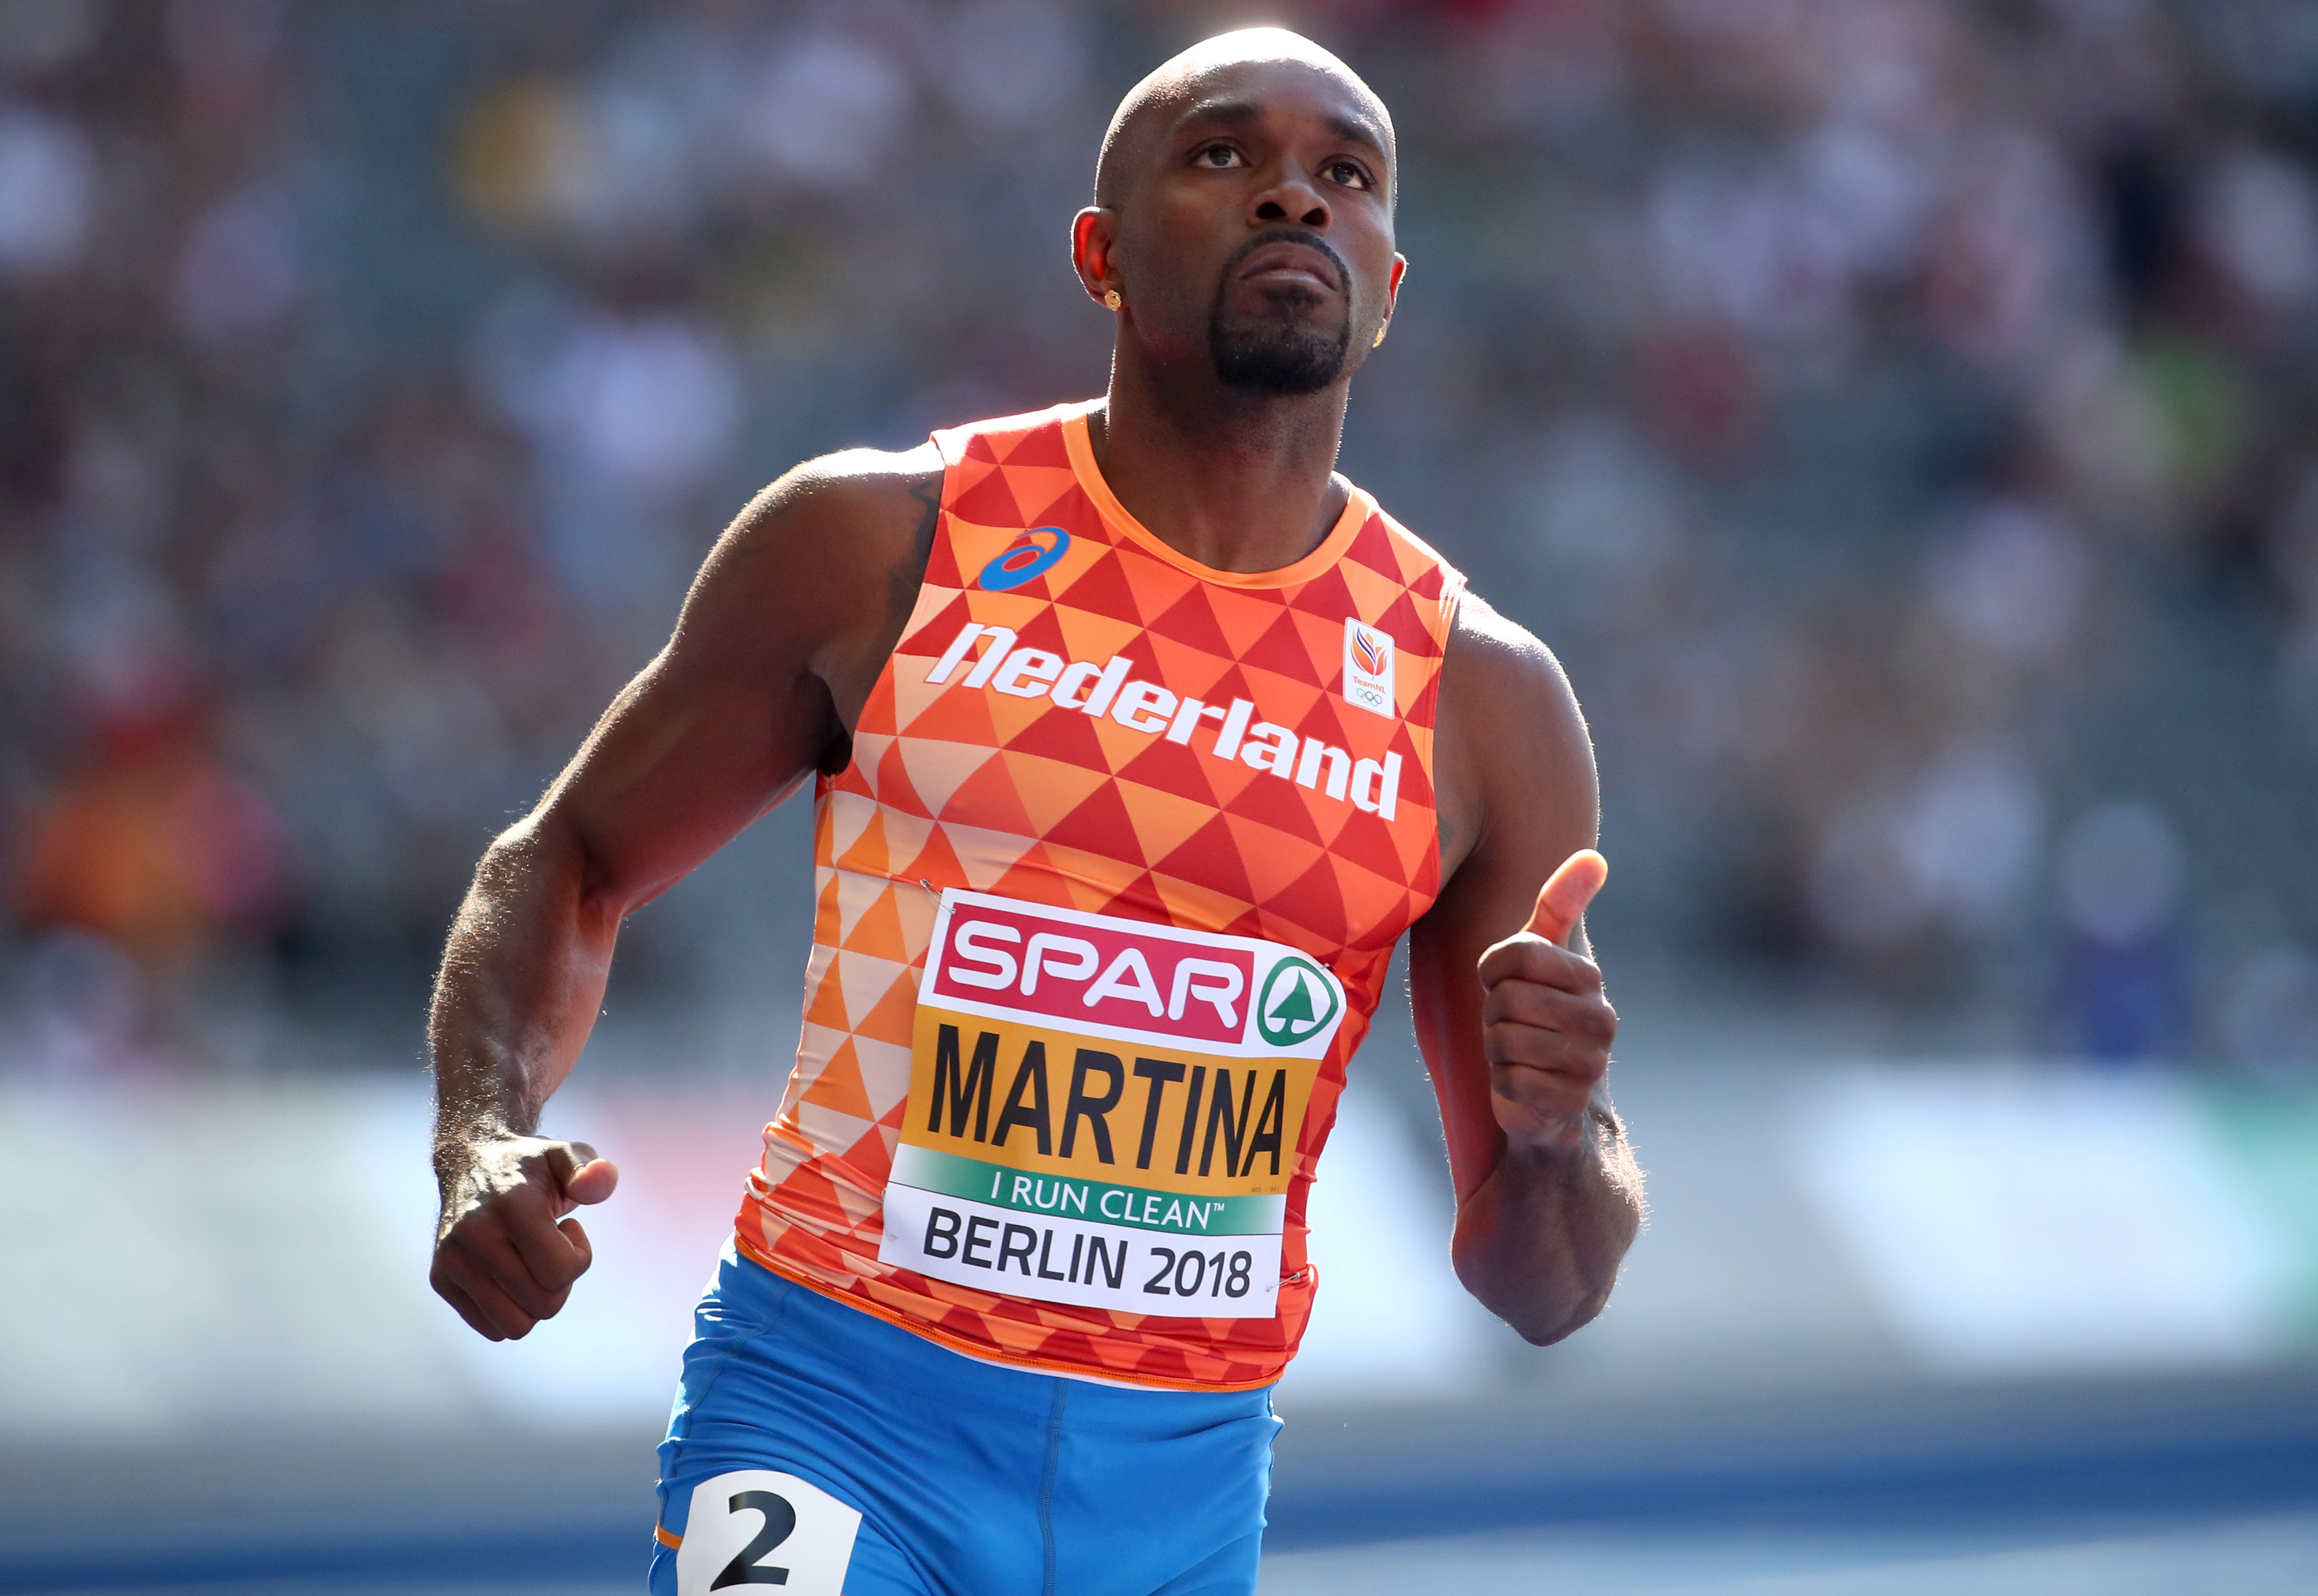 2018 European Championships - Men's 100 meters, Round 1 - Olympic Stadium, Berlin, Germany - August 6, 2018 - Churandy Martina of the Netherlands competes. REUTERS/Michael Dalder